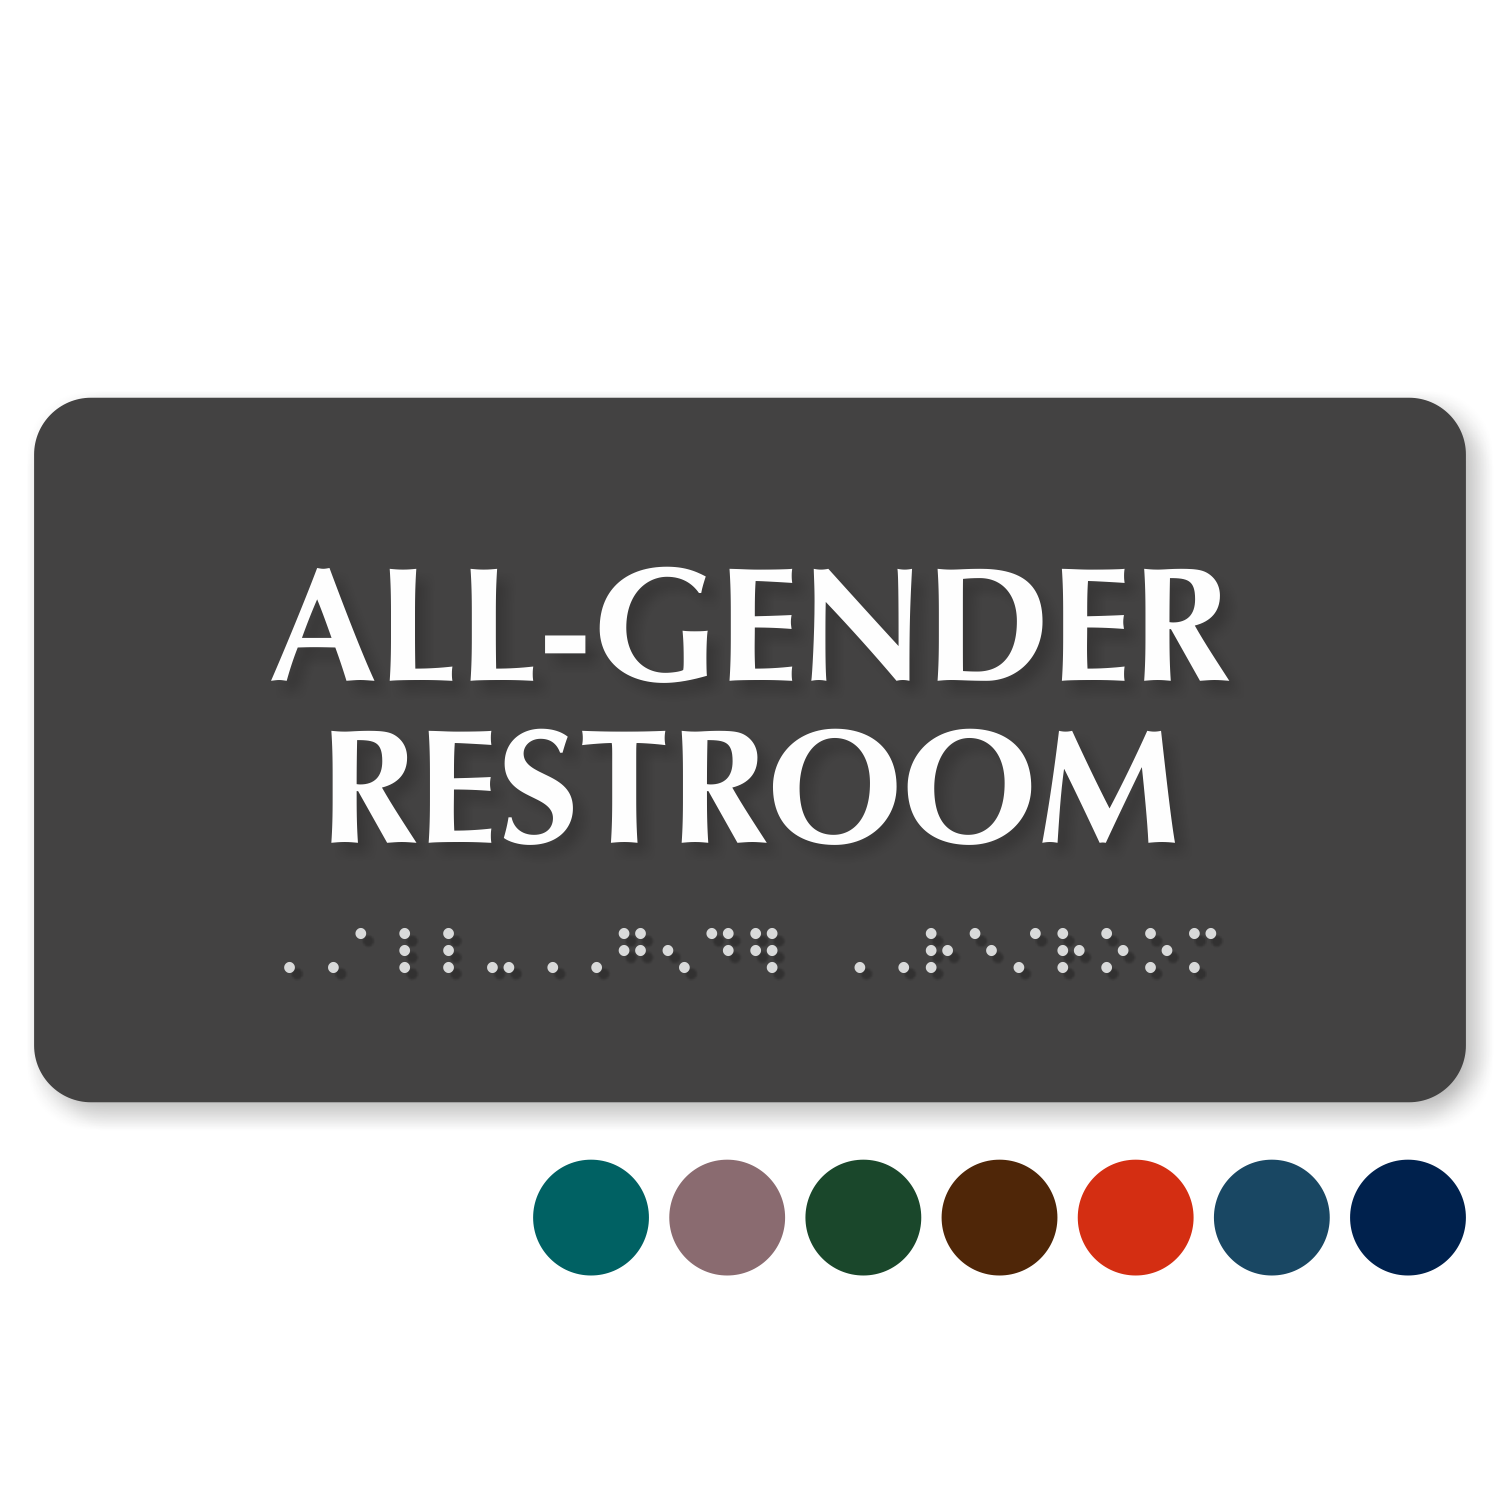 Bathroom Signs For Business all-gender restroom signs | transgender restroom signs